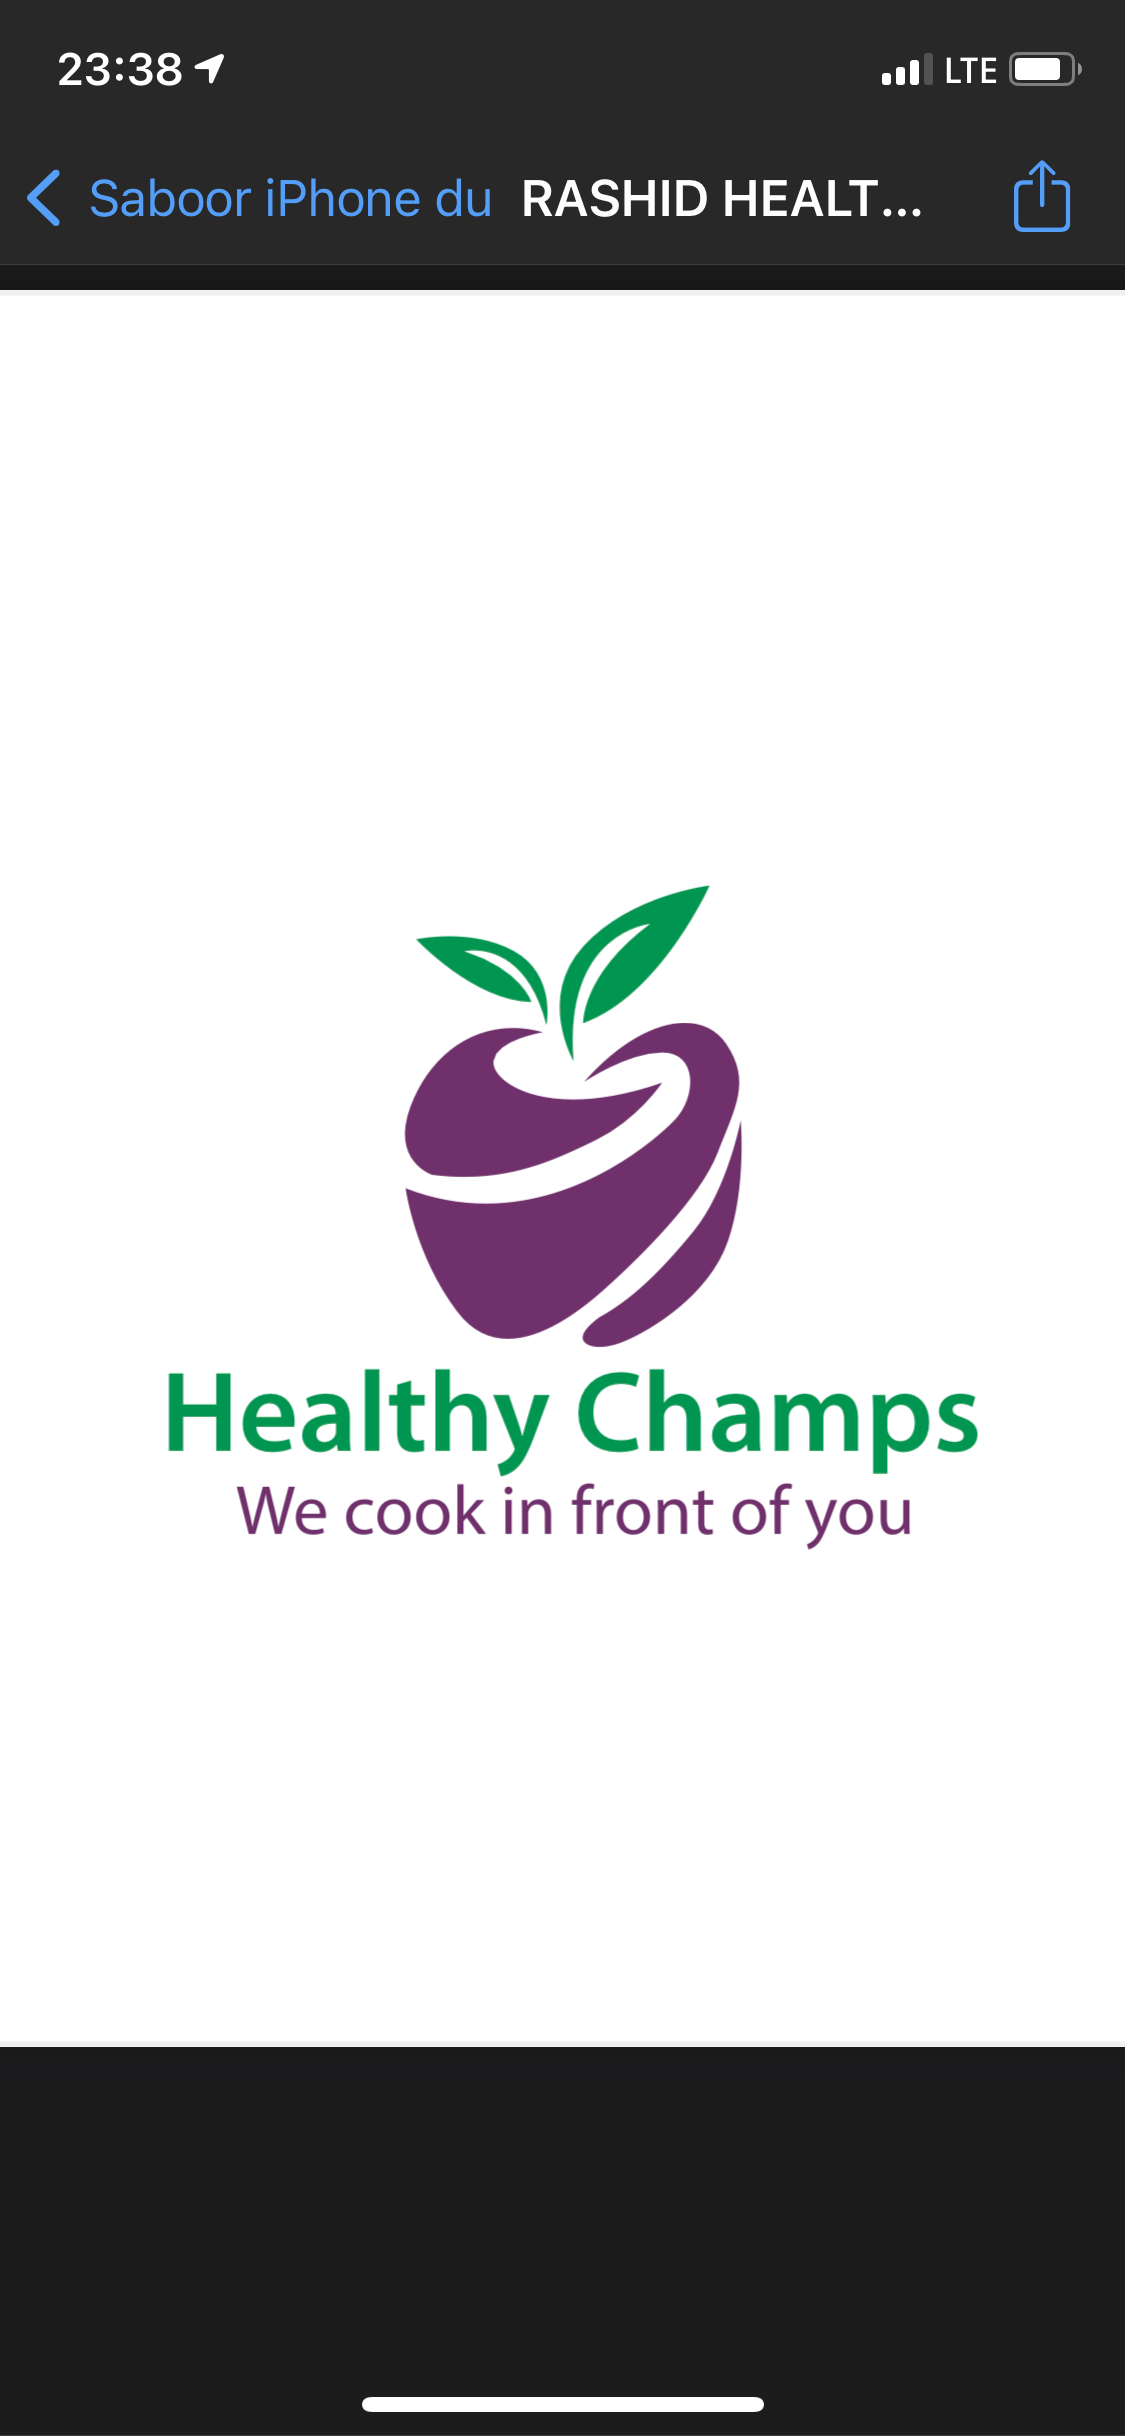 https://www.mncjobsgulf.com/company/healthy-champs